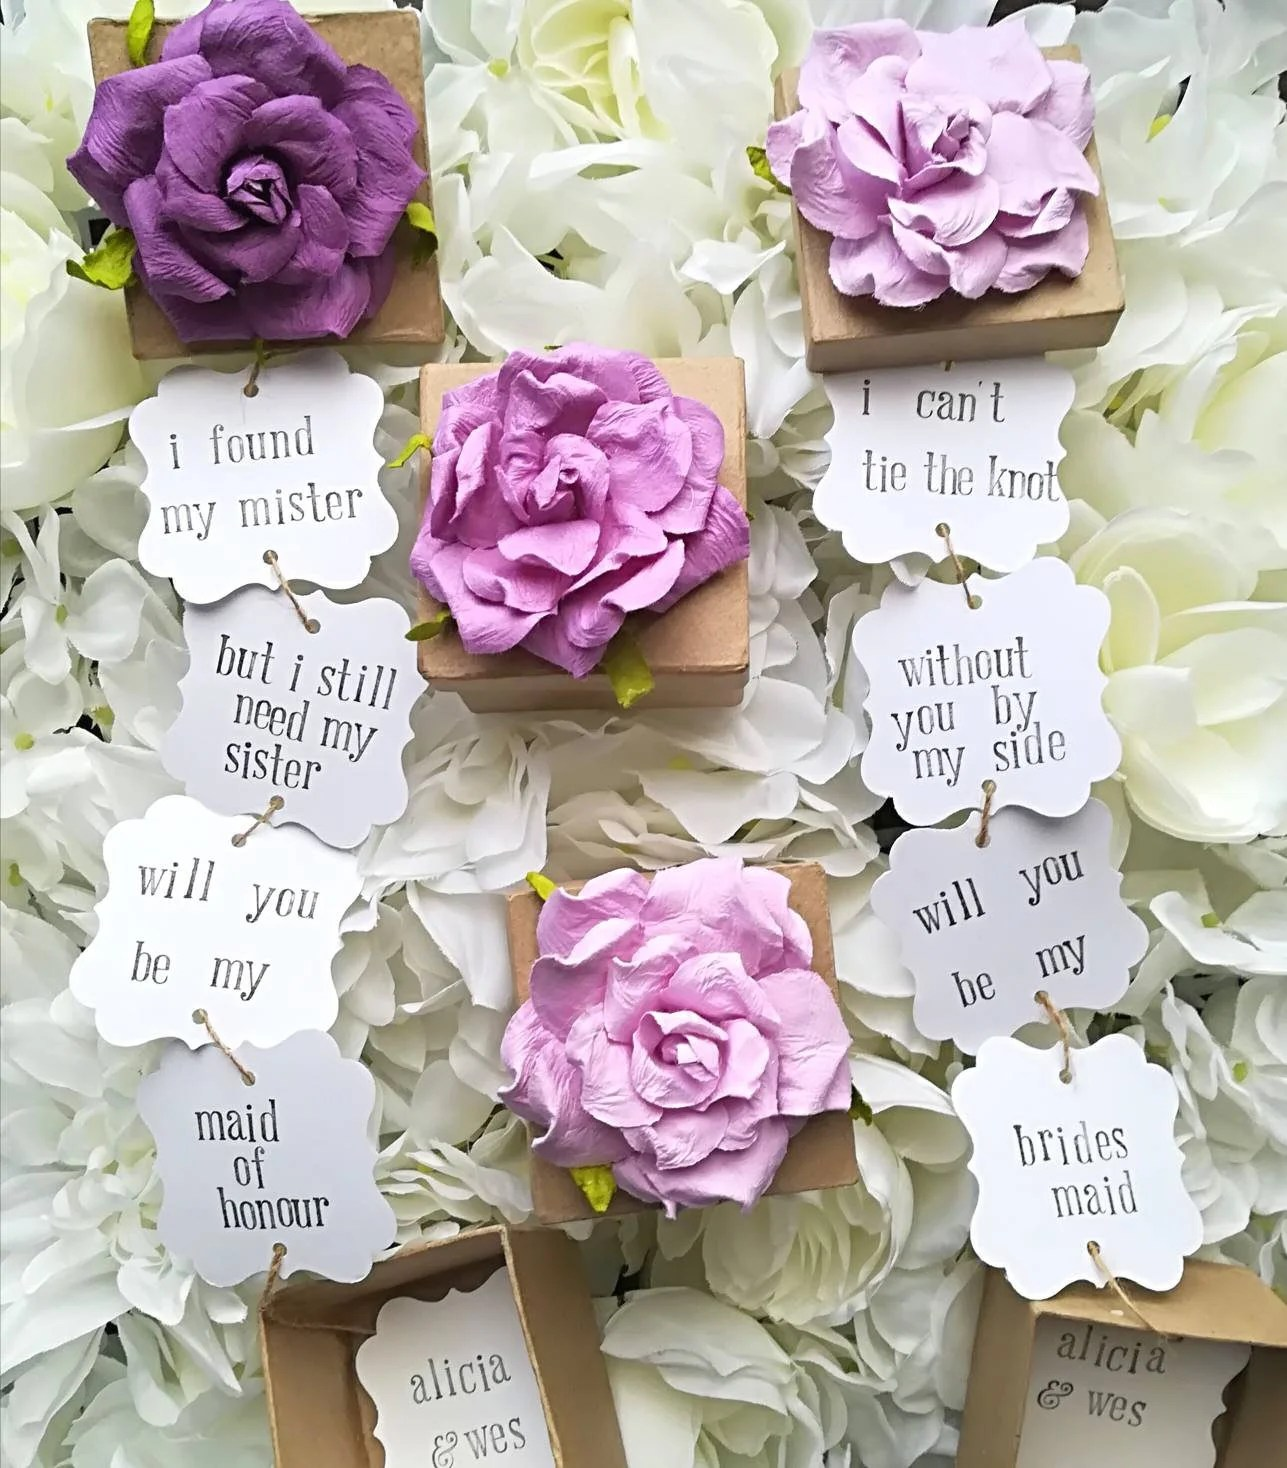 Will you be my Bridesmaid Proposal Box // Maid of Honor Proposal Box // Bridesmaid Proposal // Personalized Gift Box // Bridesmaid Card                                                                    PleaseElloise         From shop PleaseElloise                               5 out of 5 stars                                                                                                                                                                                                                                                          (170)                 170 reviews                                                      CA$11.50